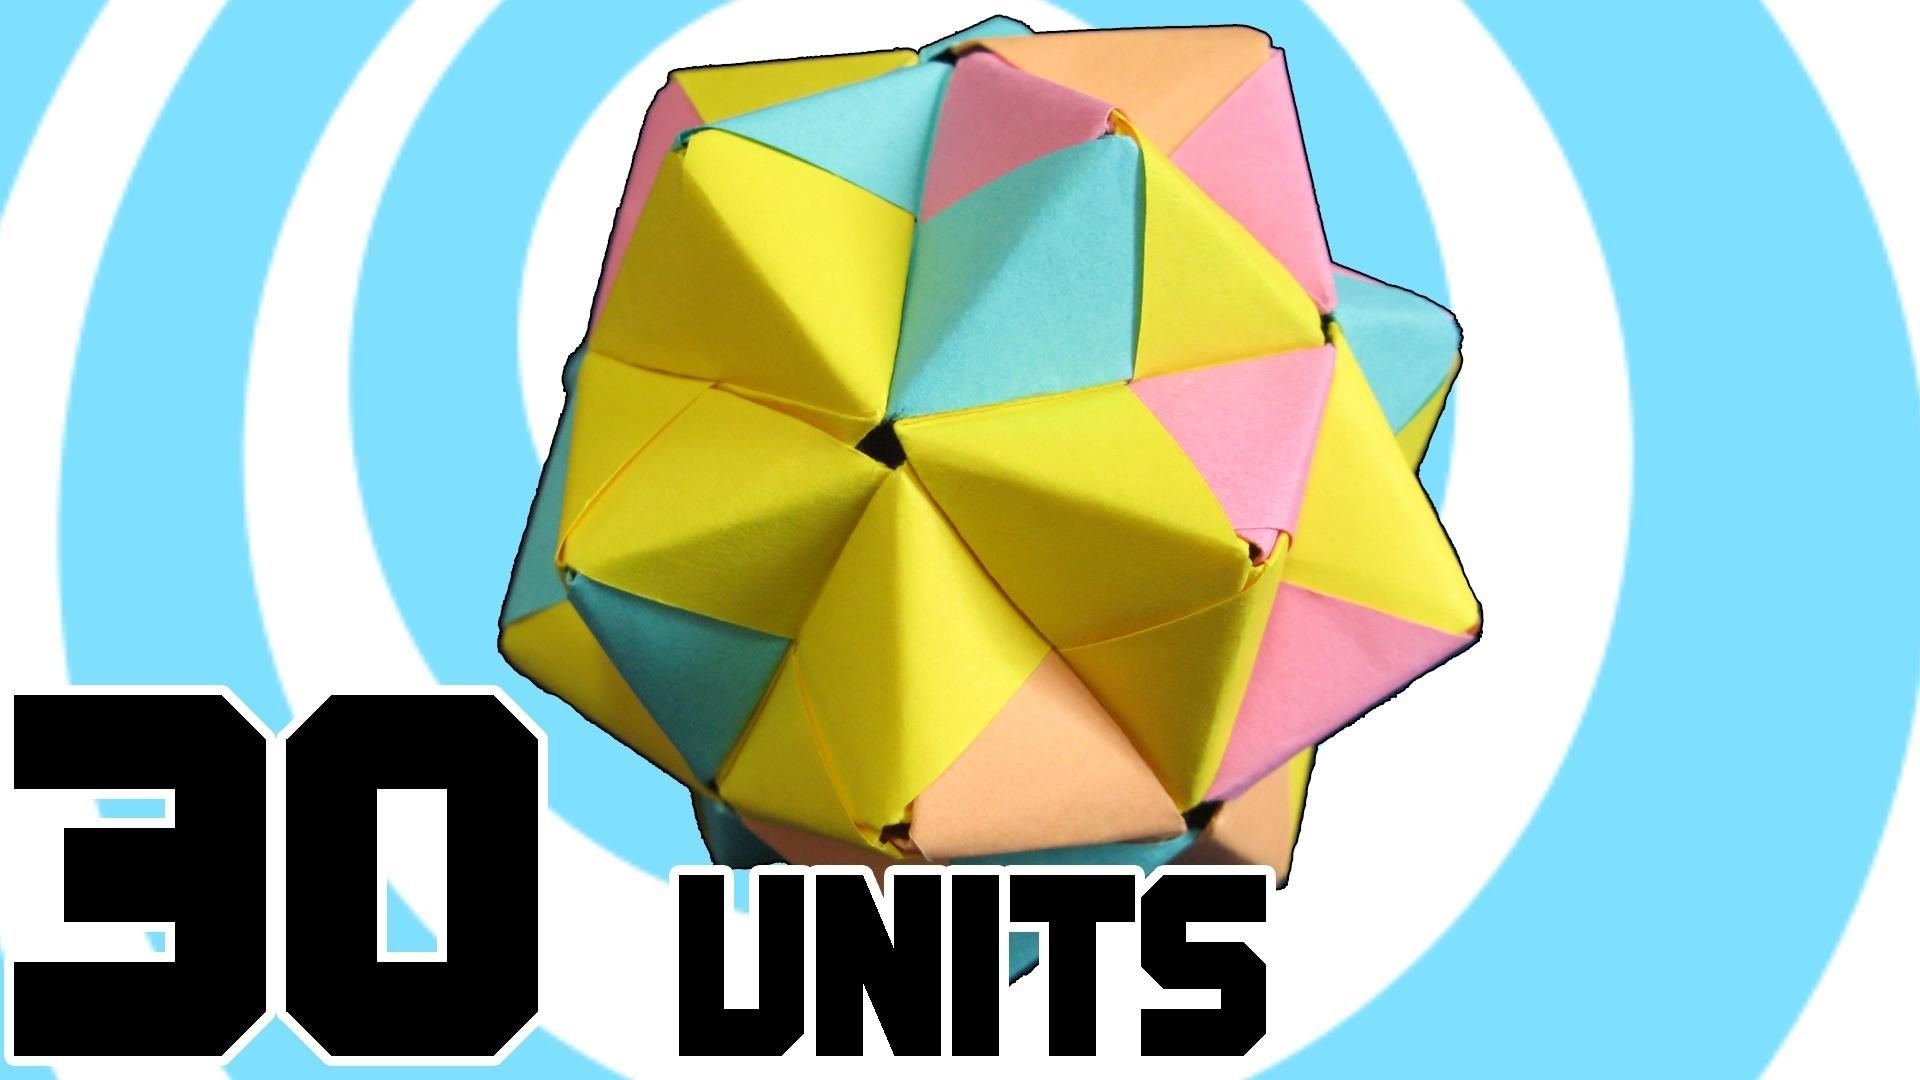 How to make modular origami icosahedron from 30 sonobe units how to make modular origami icosahedron from 30 sonobe units jeuxipadfo Gallery